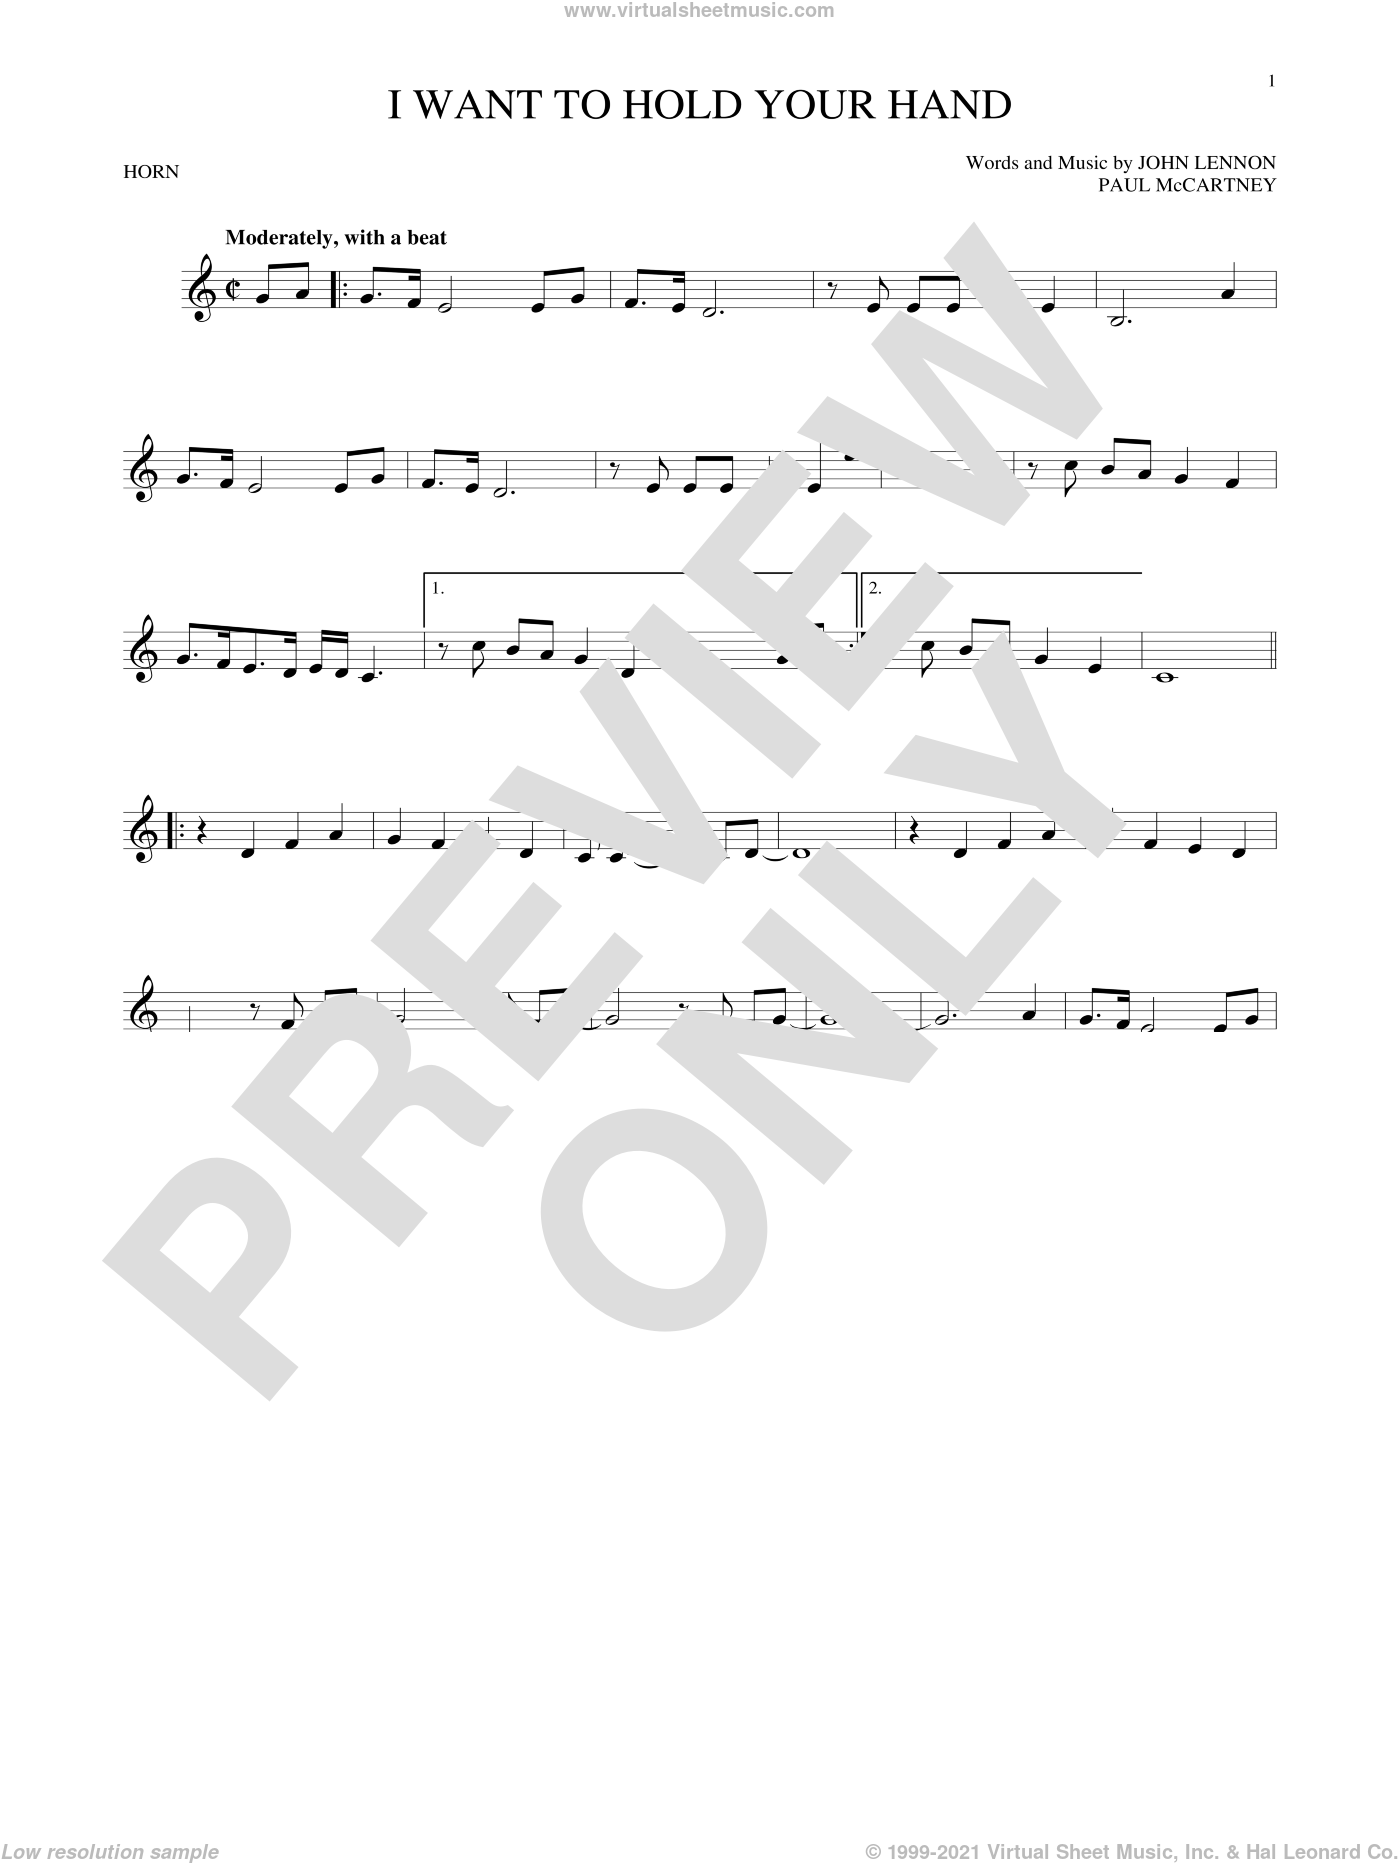 I Want To Hold Your Hand sheet music for horn solo by Paul McCartney, The Beatles and John Lennon. Score Image Preview.